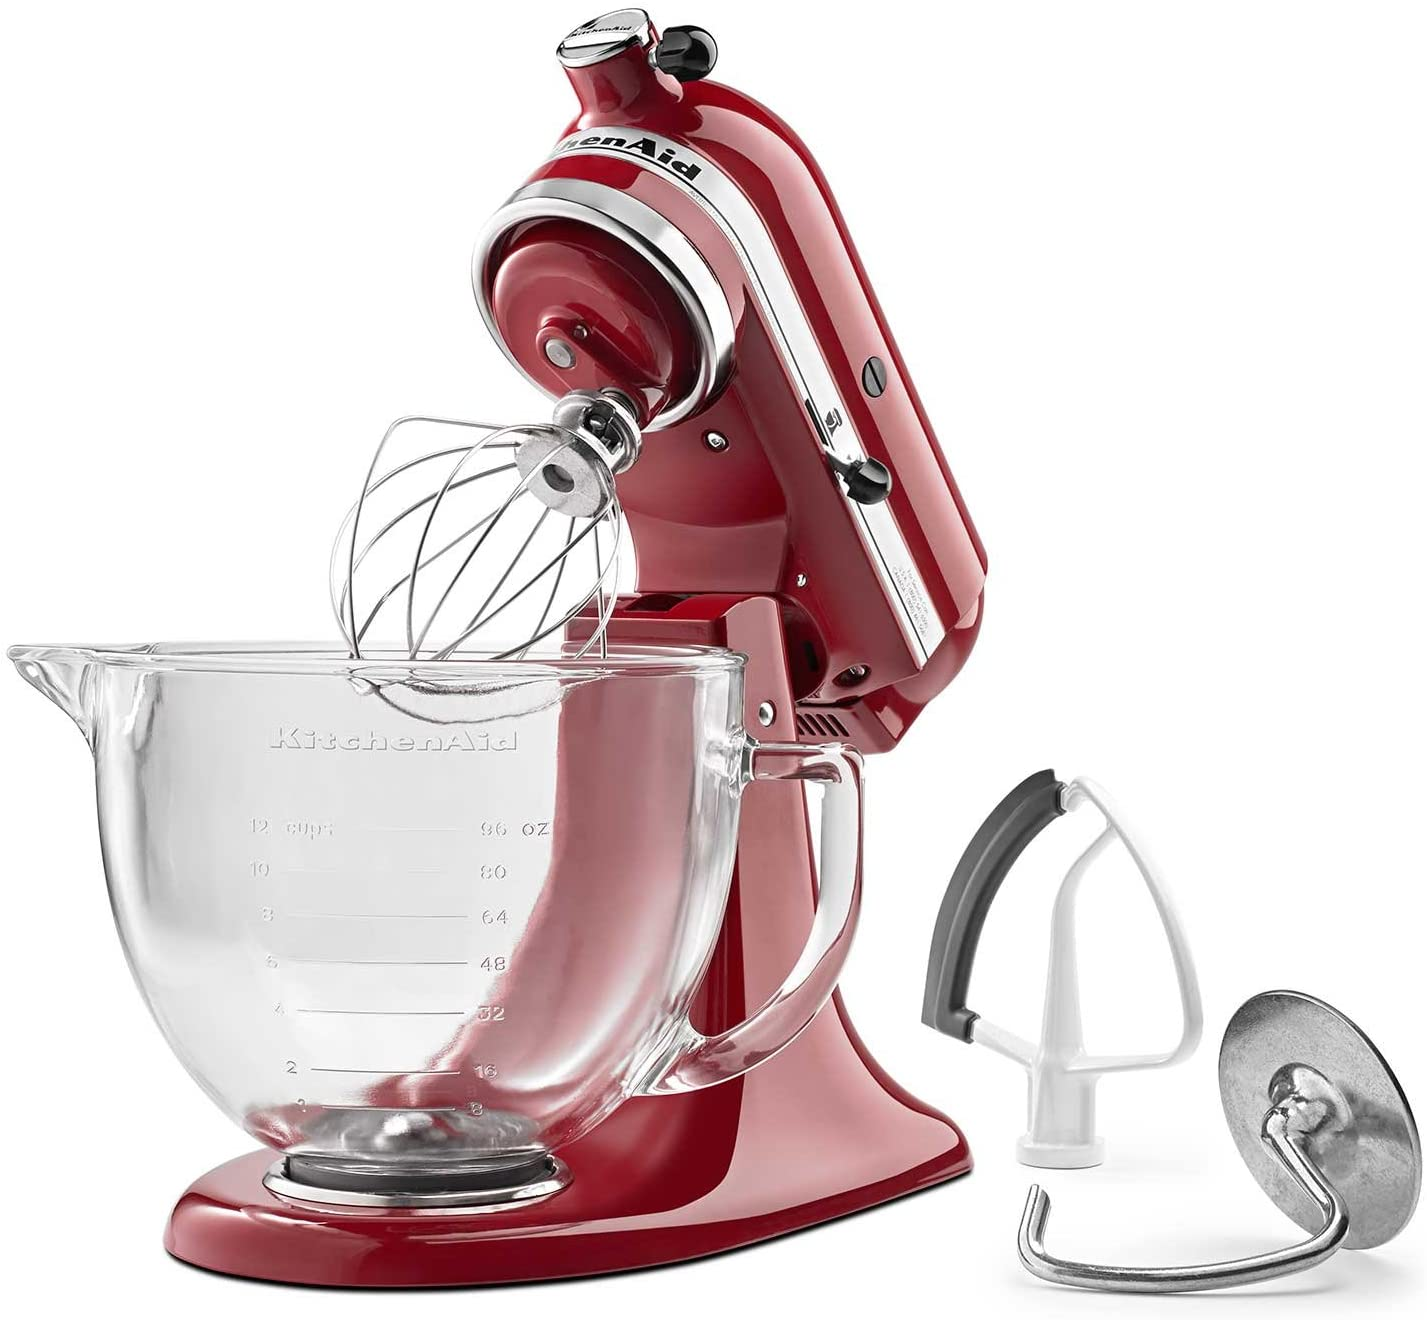 Amazon Com Kitchenaid Ksm105gbcer 5 Qt Tilt Head Stand Mixer With Glass Bowl And Flex Edge Beater Empire Red Kitchen Dining